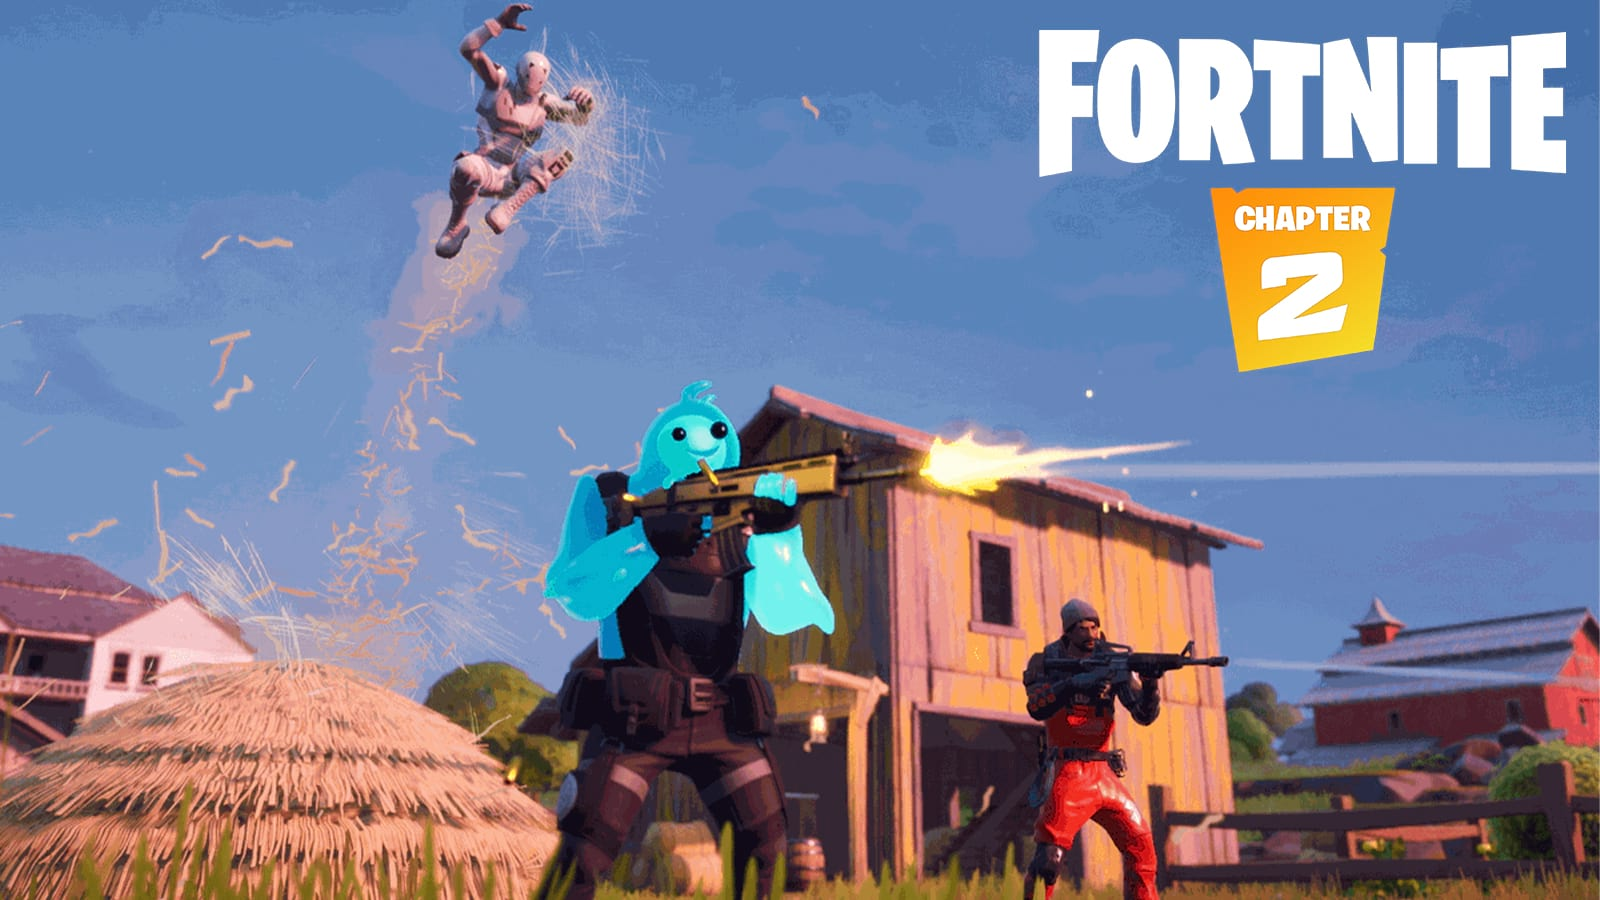 Fortnite chapter 2 screenshot